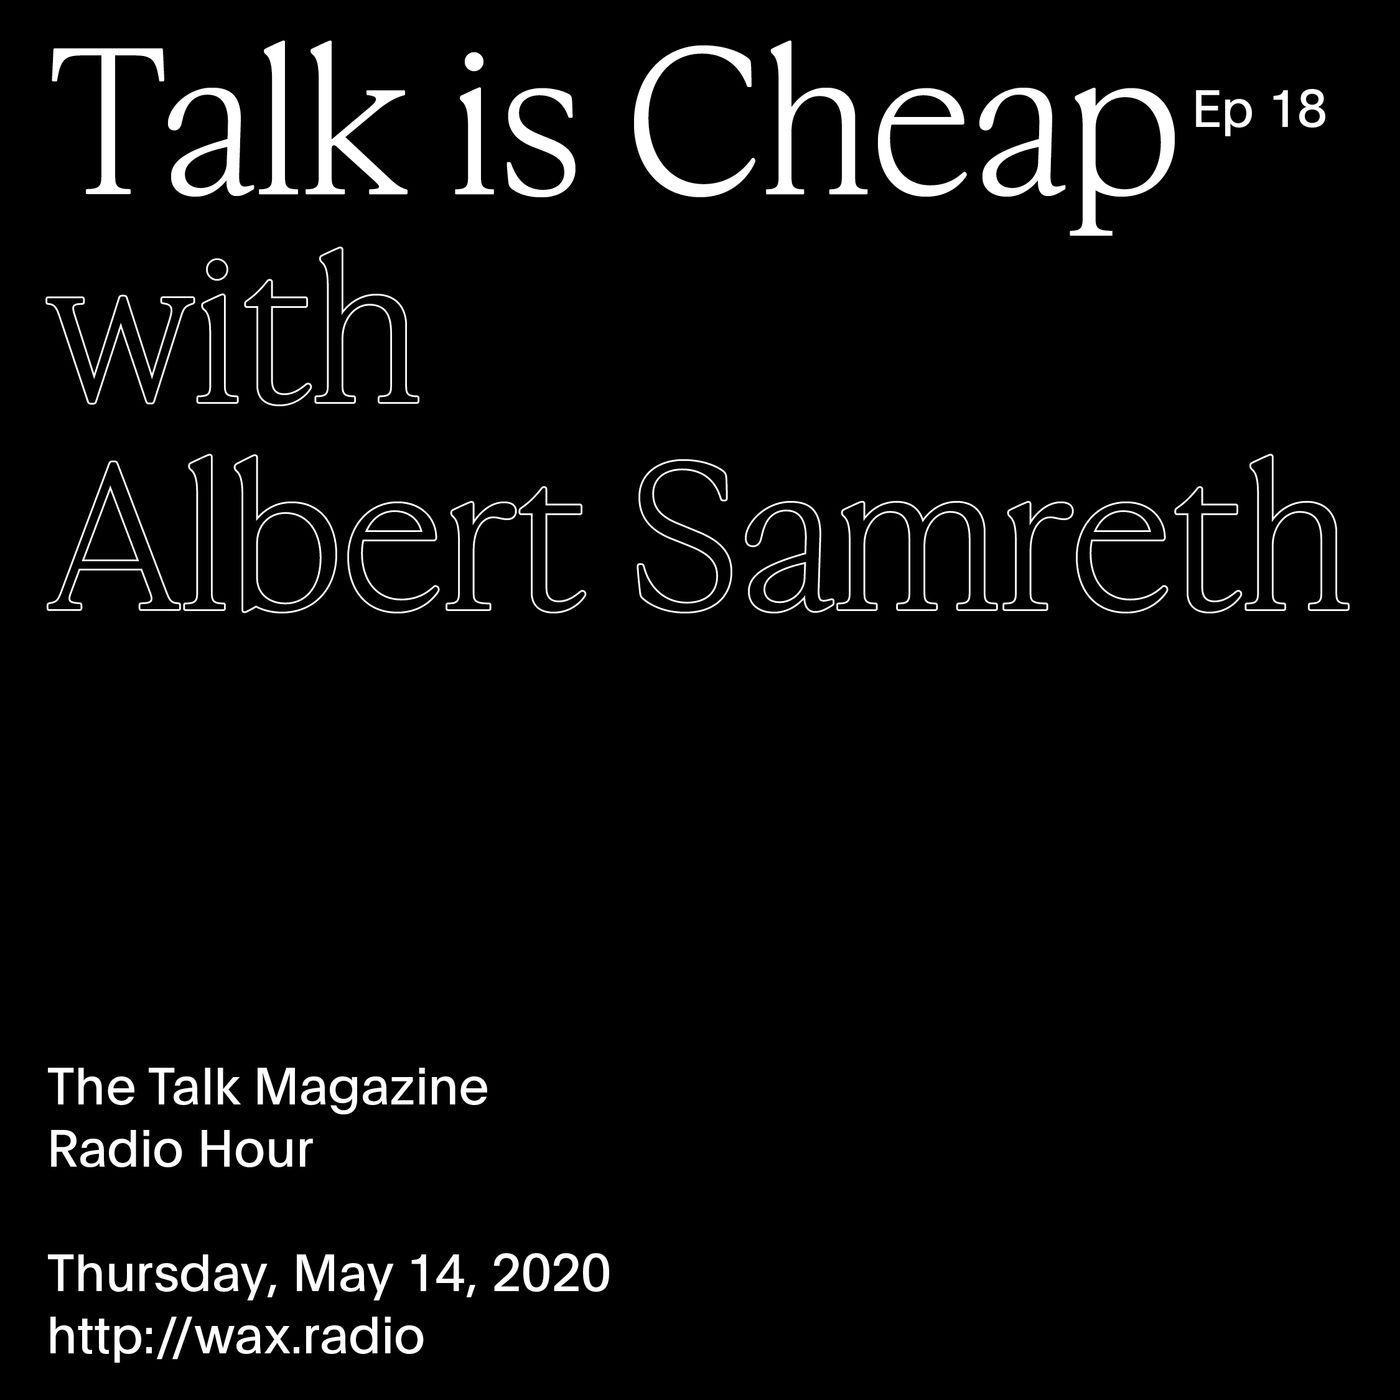 Episode 18 with Albert Samreth